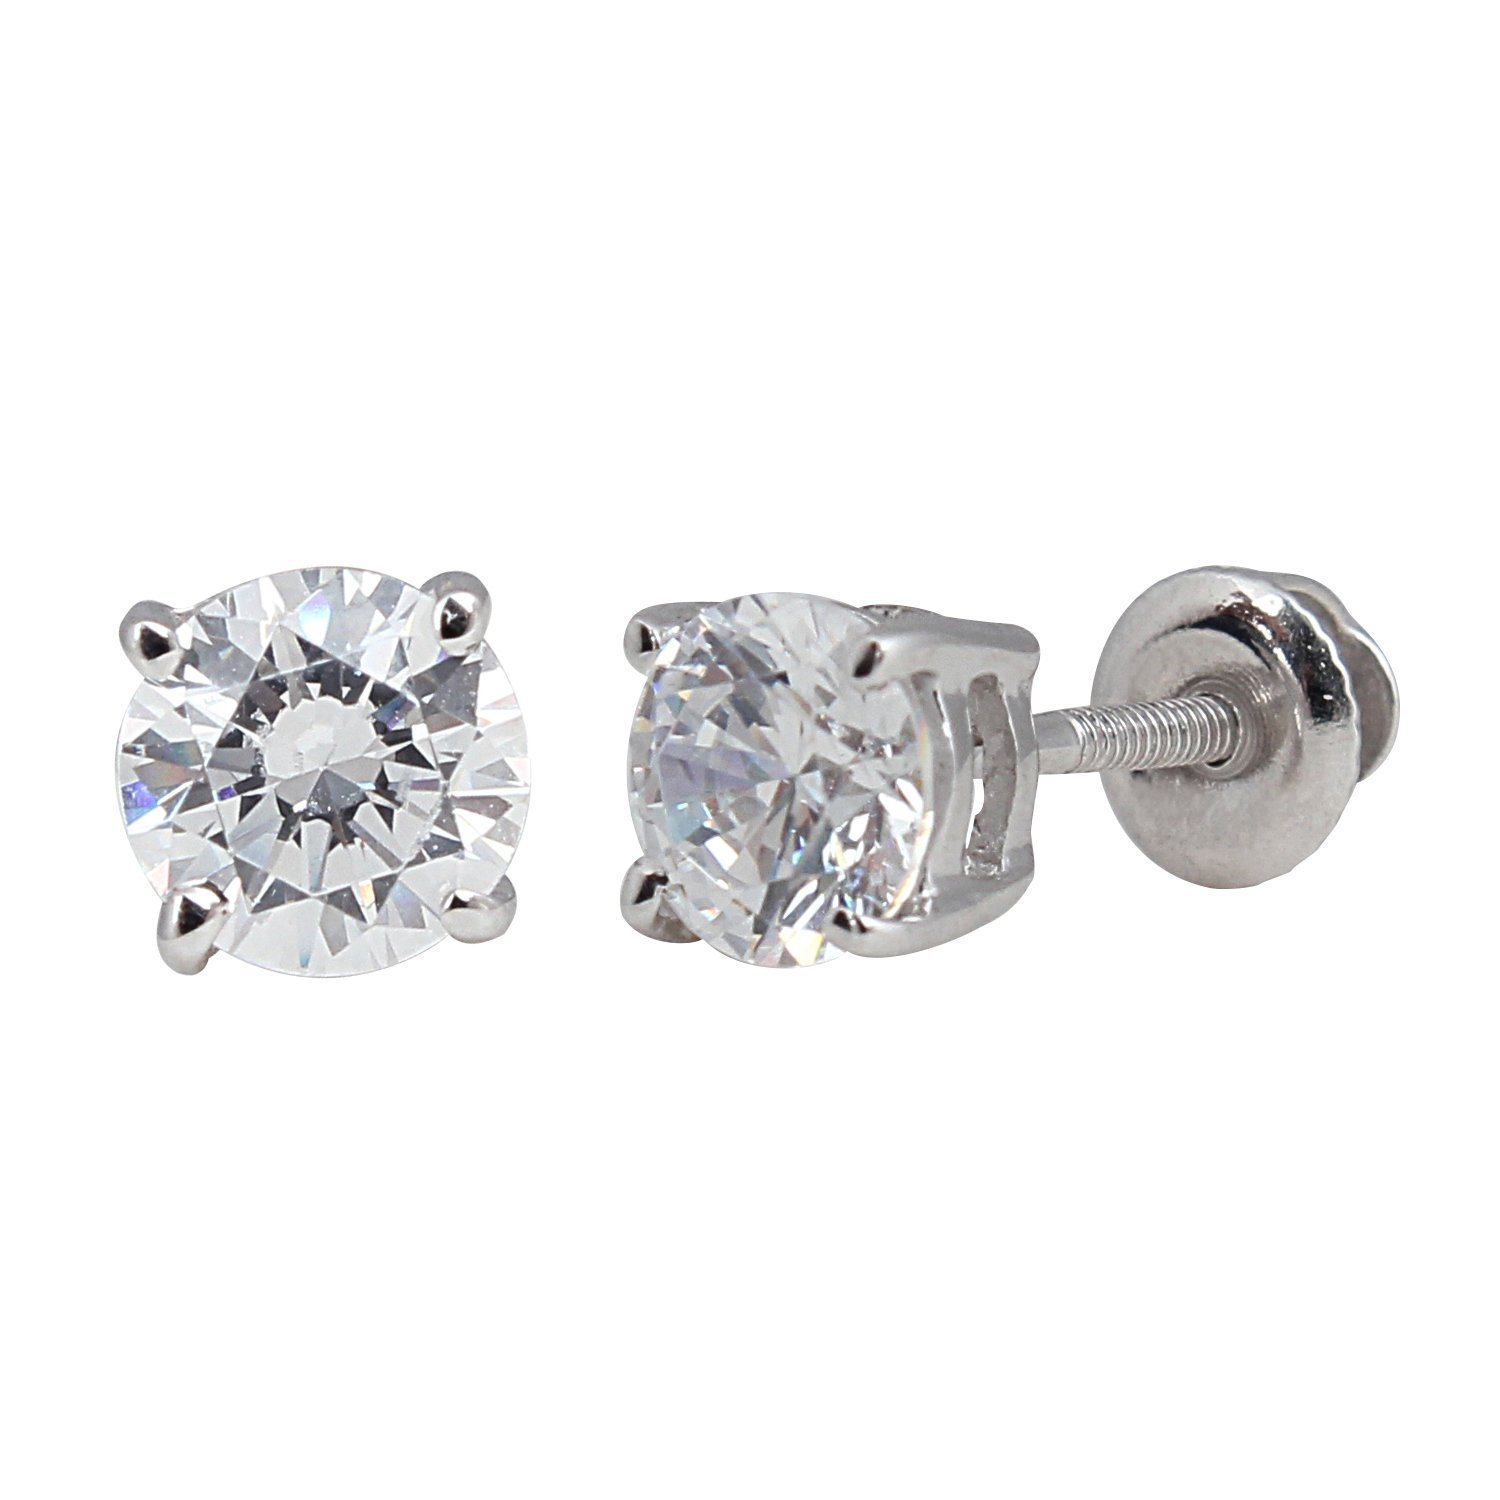 Amazon: 14k White Gold Round Diamond Stud Earrings (1 Cttw): Jewelry